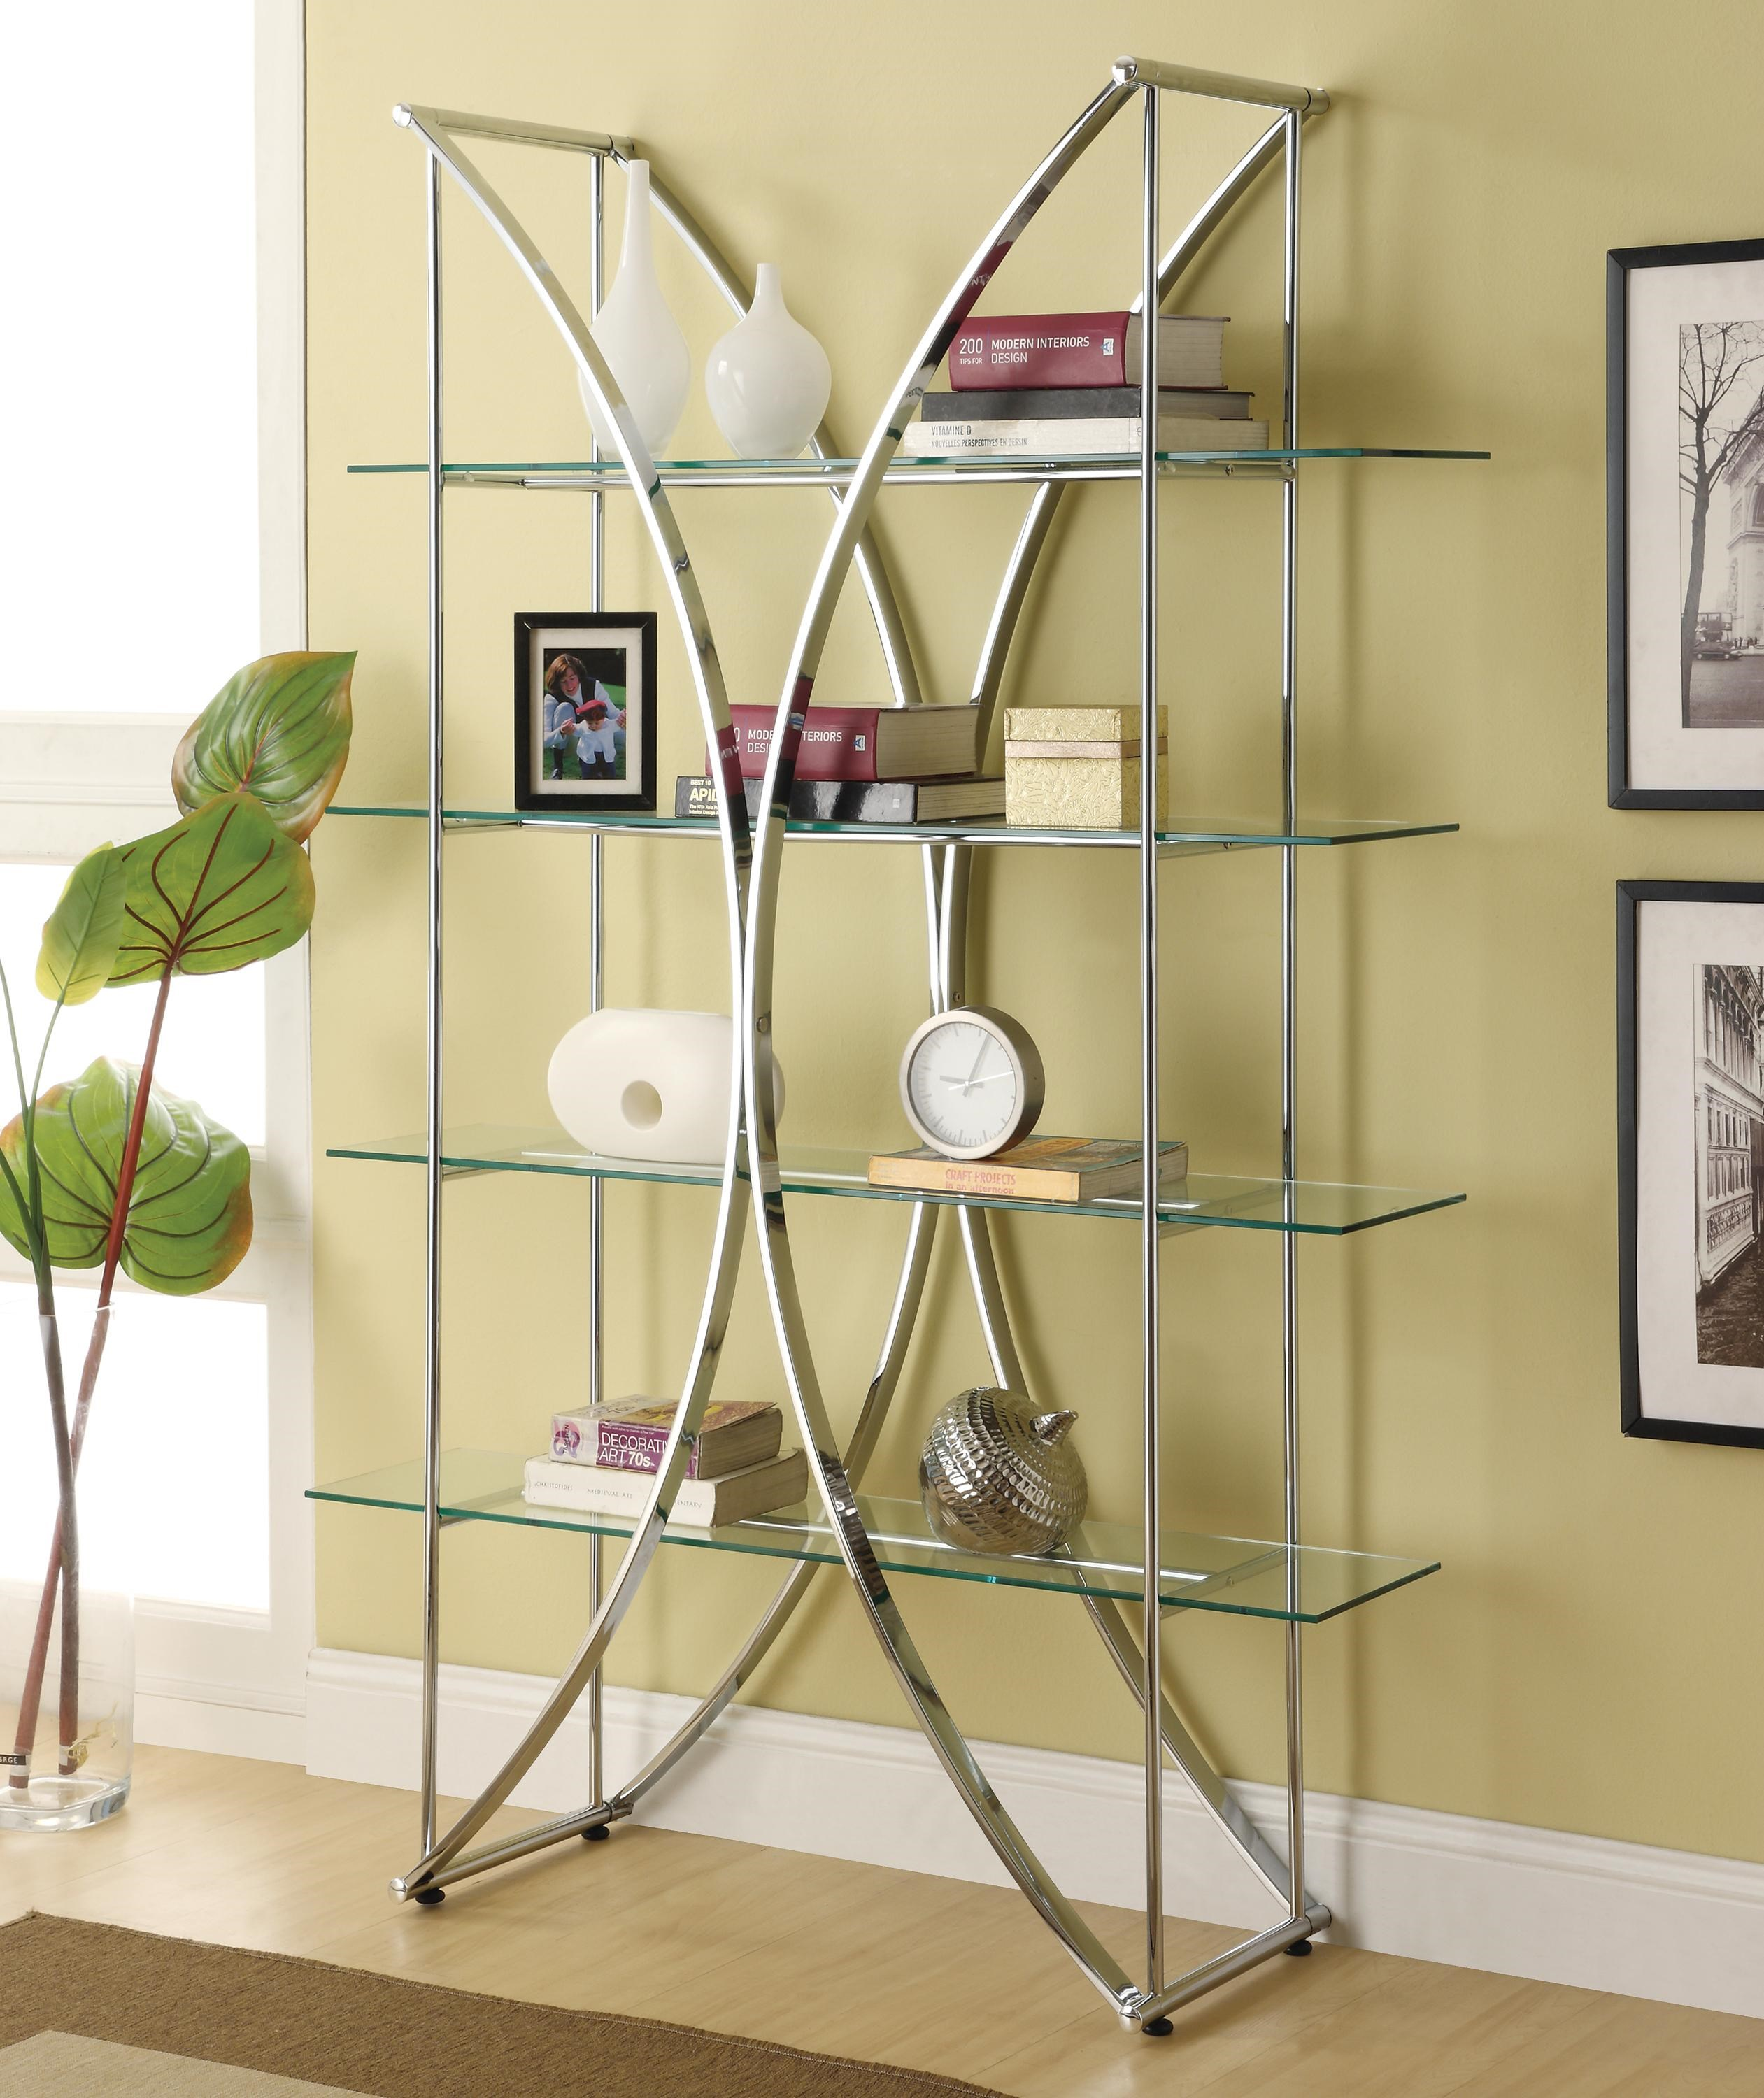 Bookcases X Motif Chrome Finish Bookshelf With Floating Style Glass Shelves.  Part Of The Bookcases Collection By Coaster